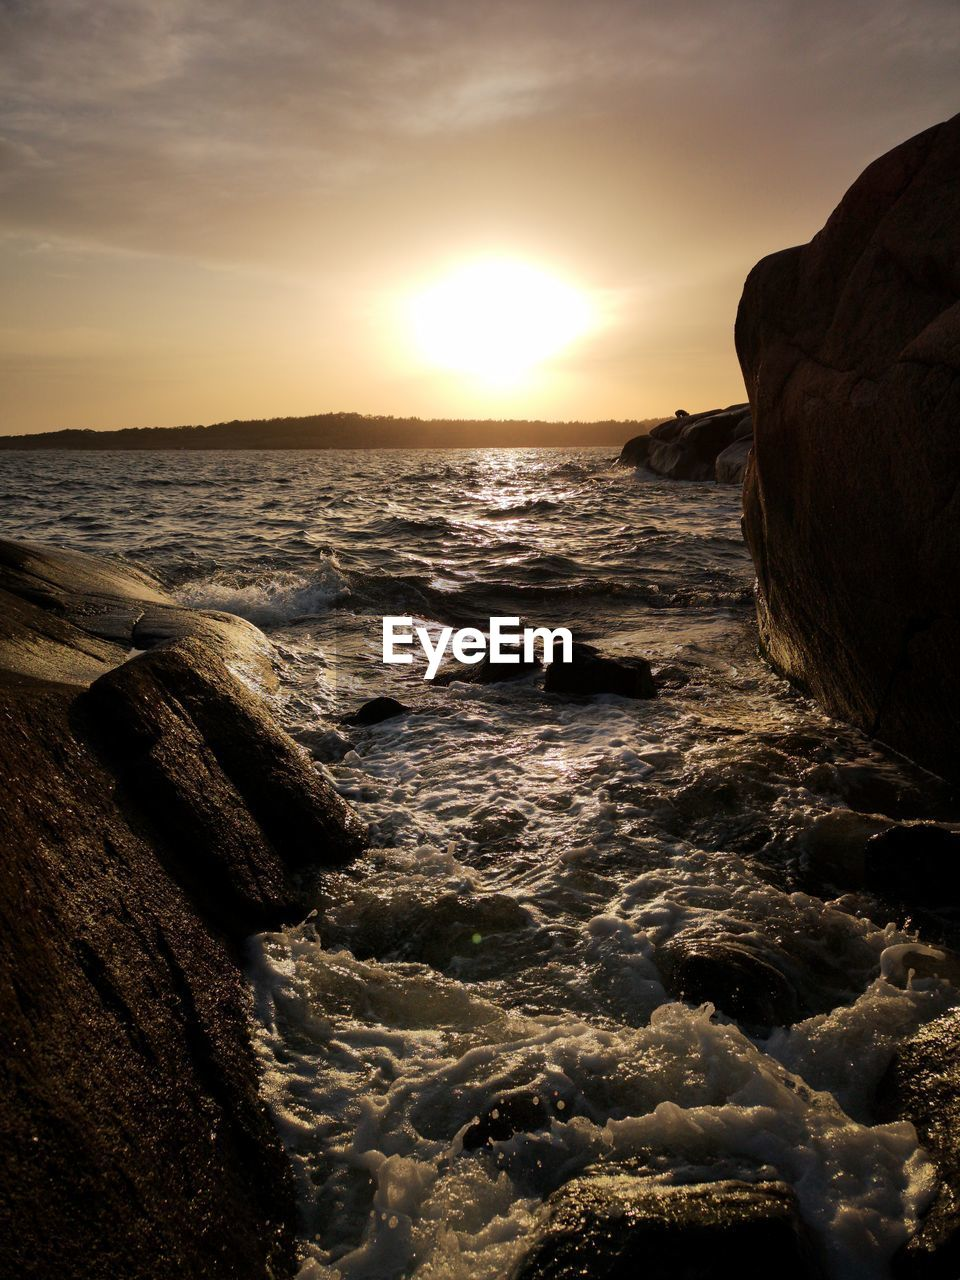 sky, sea, sunset, water, beauty in nature, scenics - nature, rock, land, solid, horizon, rock - object, beach, motion, nature, no people, horizon over water, tranquil scene, tranquility, sun, outdoors, rocky coastline